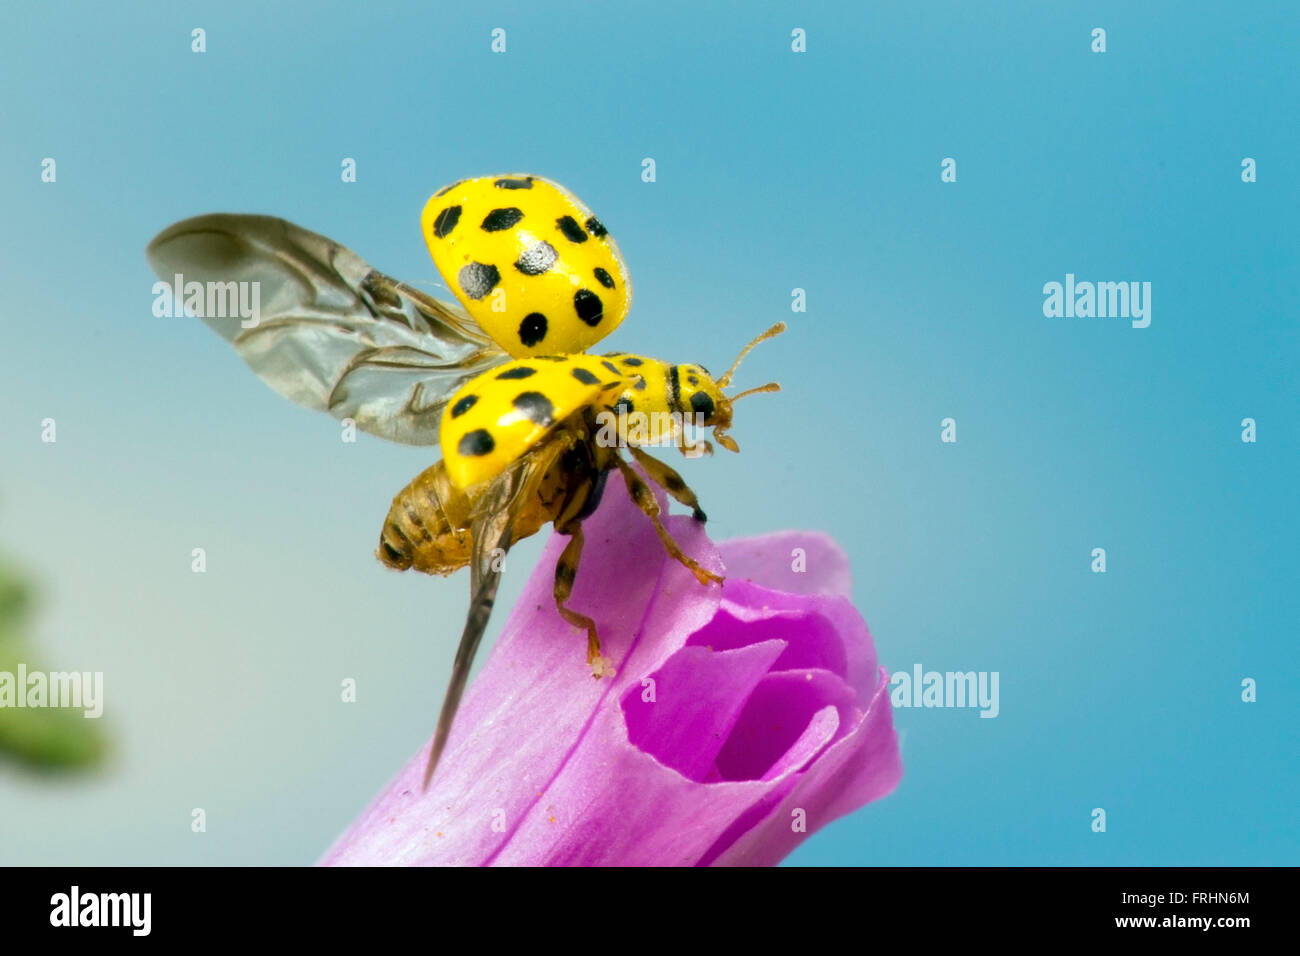 A 22 spot ladybird about to fly off - Stock Image